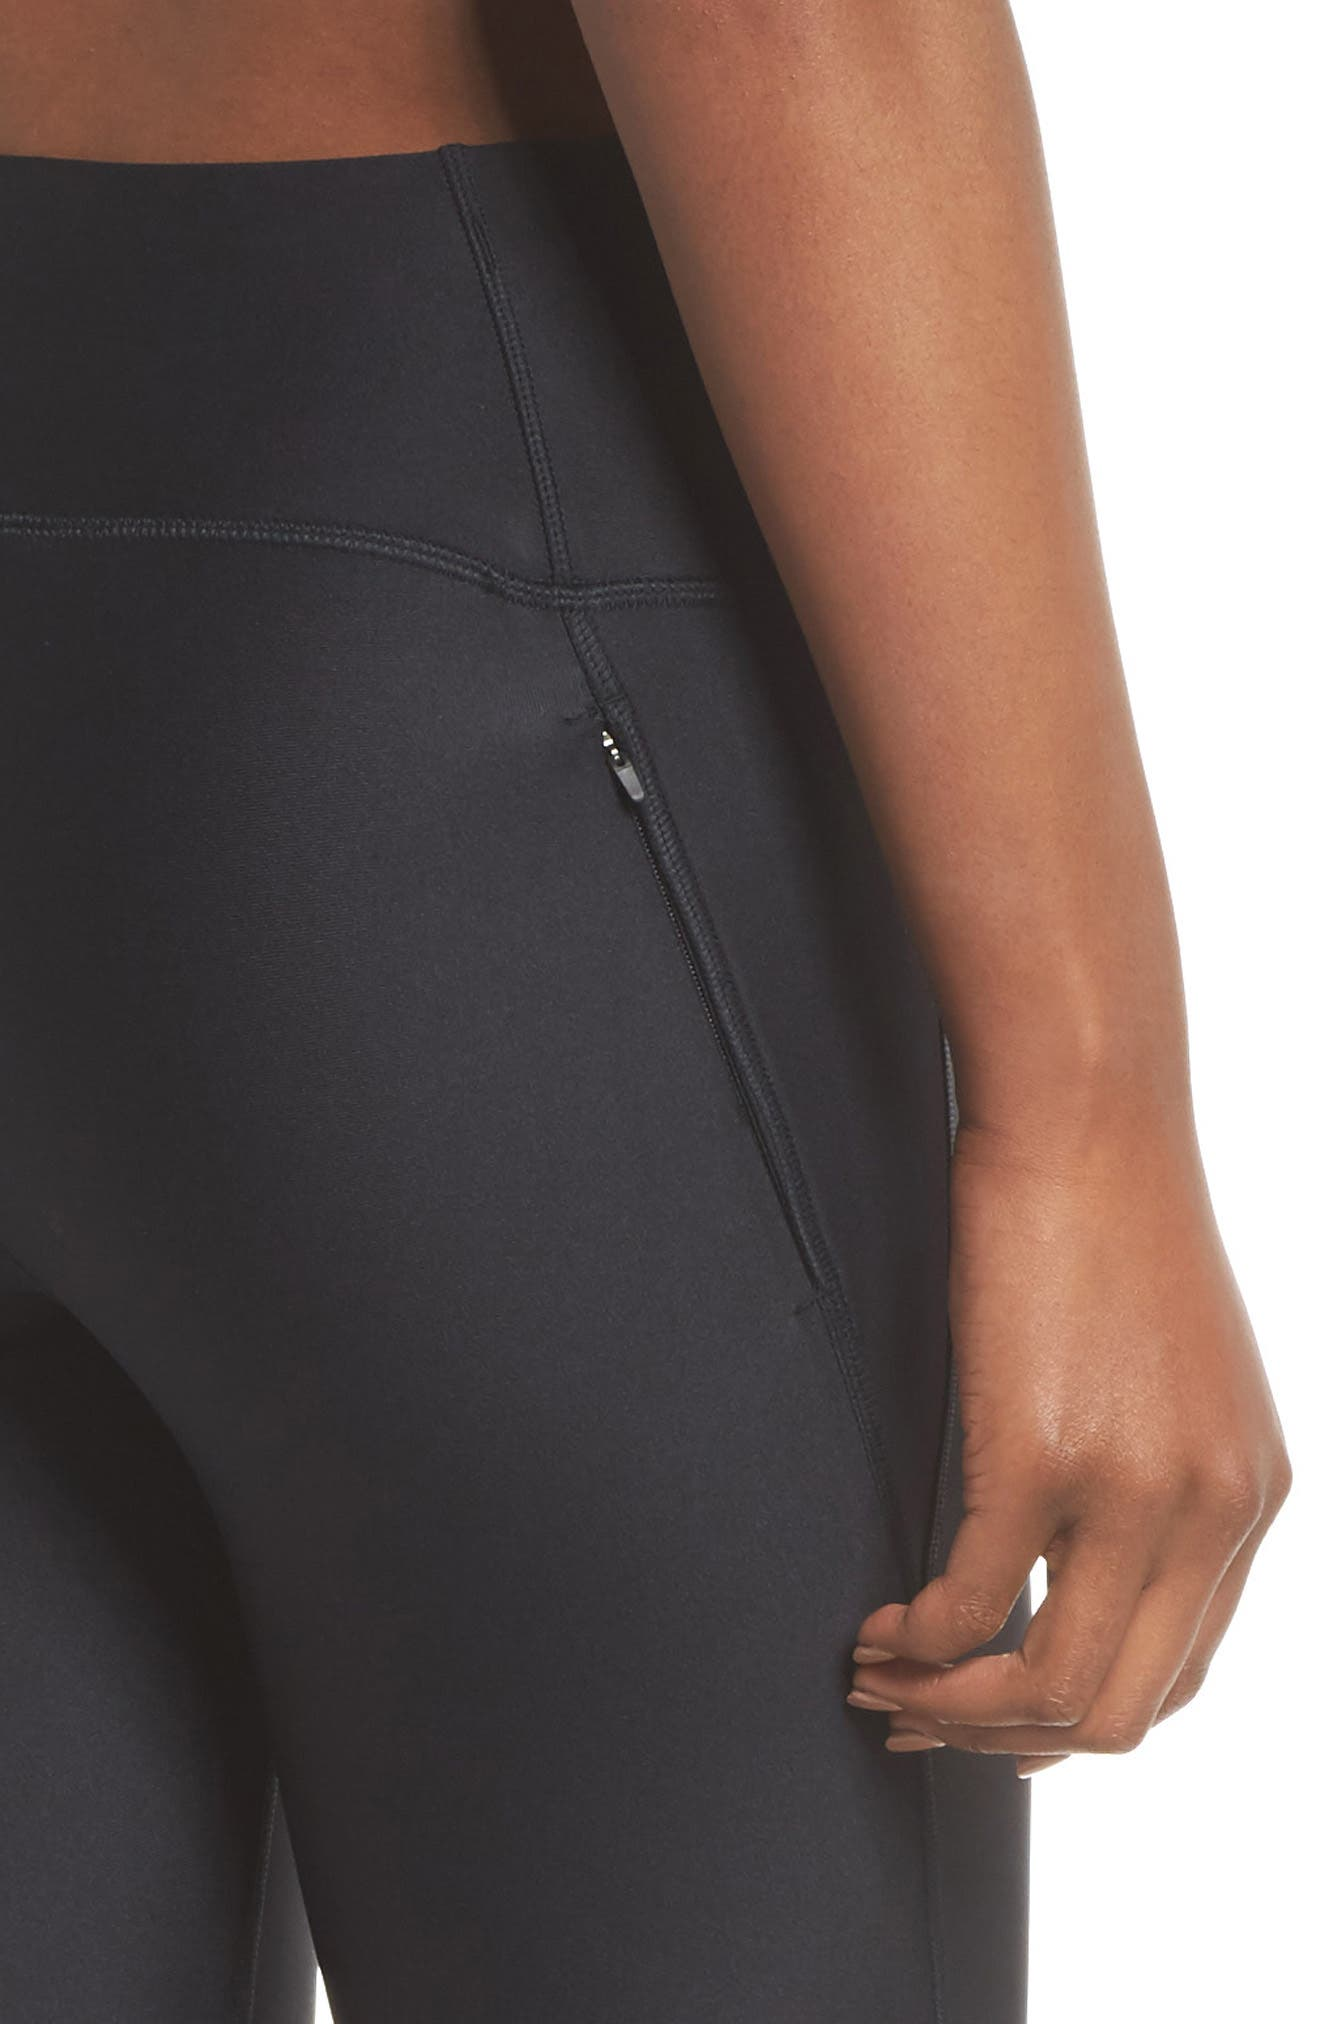 Fly Fast Tights,                             Alternate thumbnail 4, color,                             Black